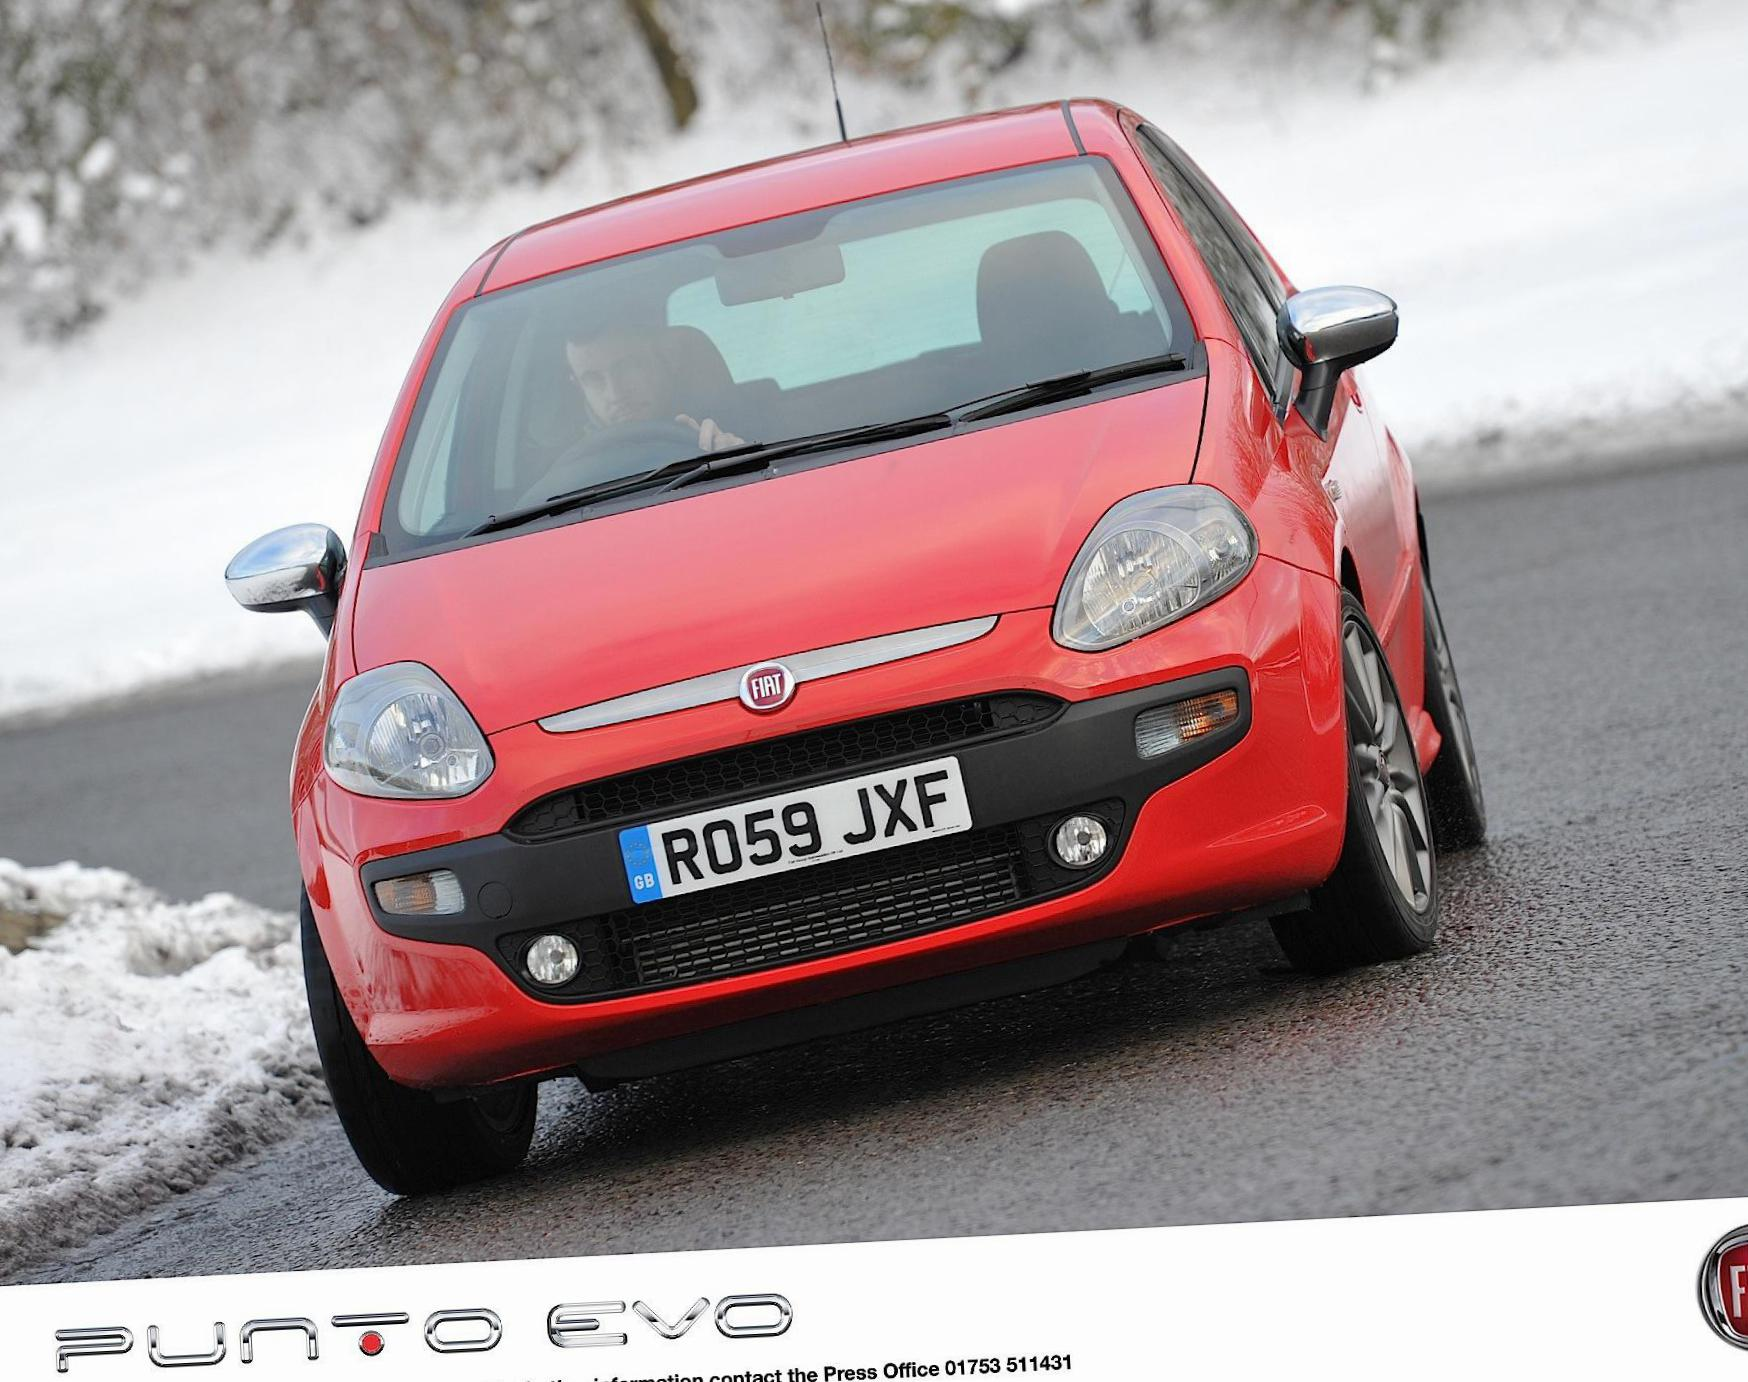 Punto Evo 3 doors Fiat Specification hatchback